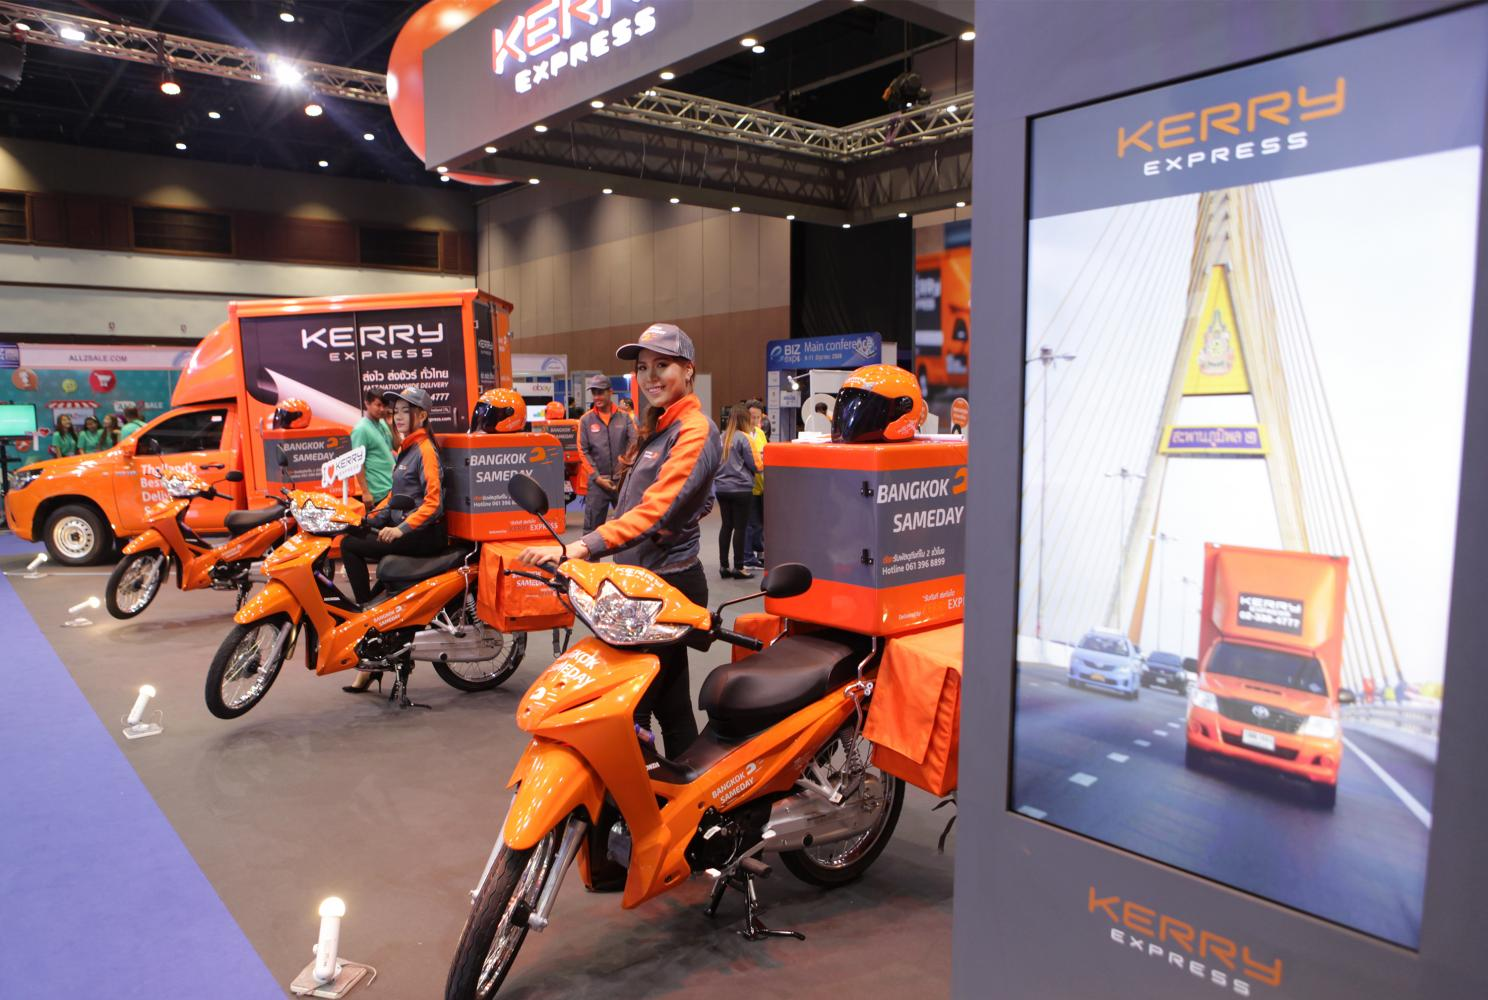 Kerry Express showcases the vehicles that power its express-delivery service at a trade fair in Bangkok in 2016.(Bangkok Post file photo)